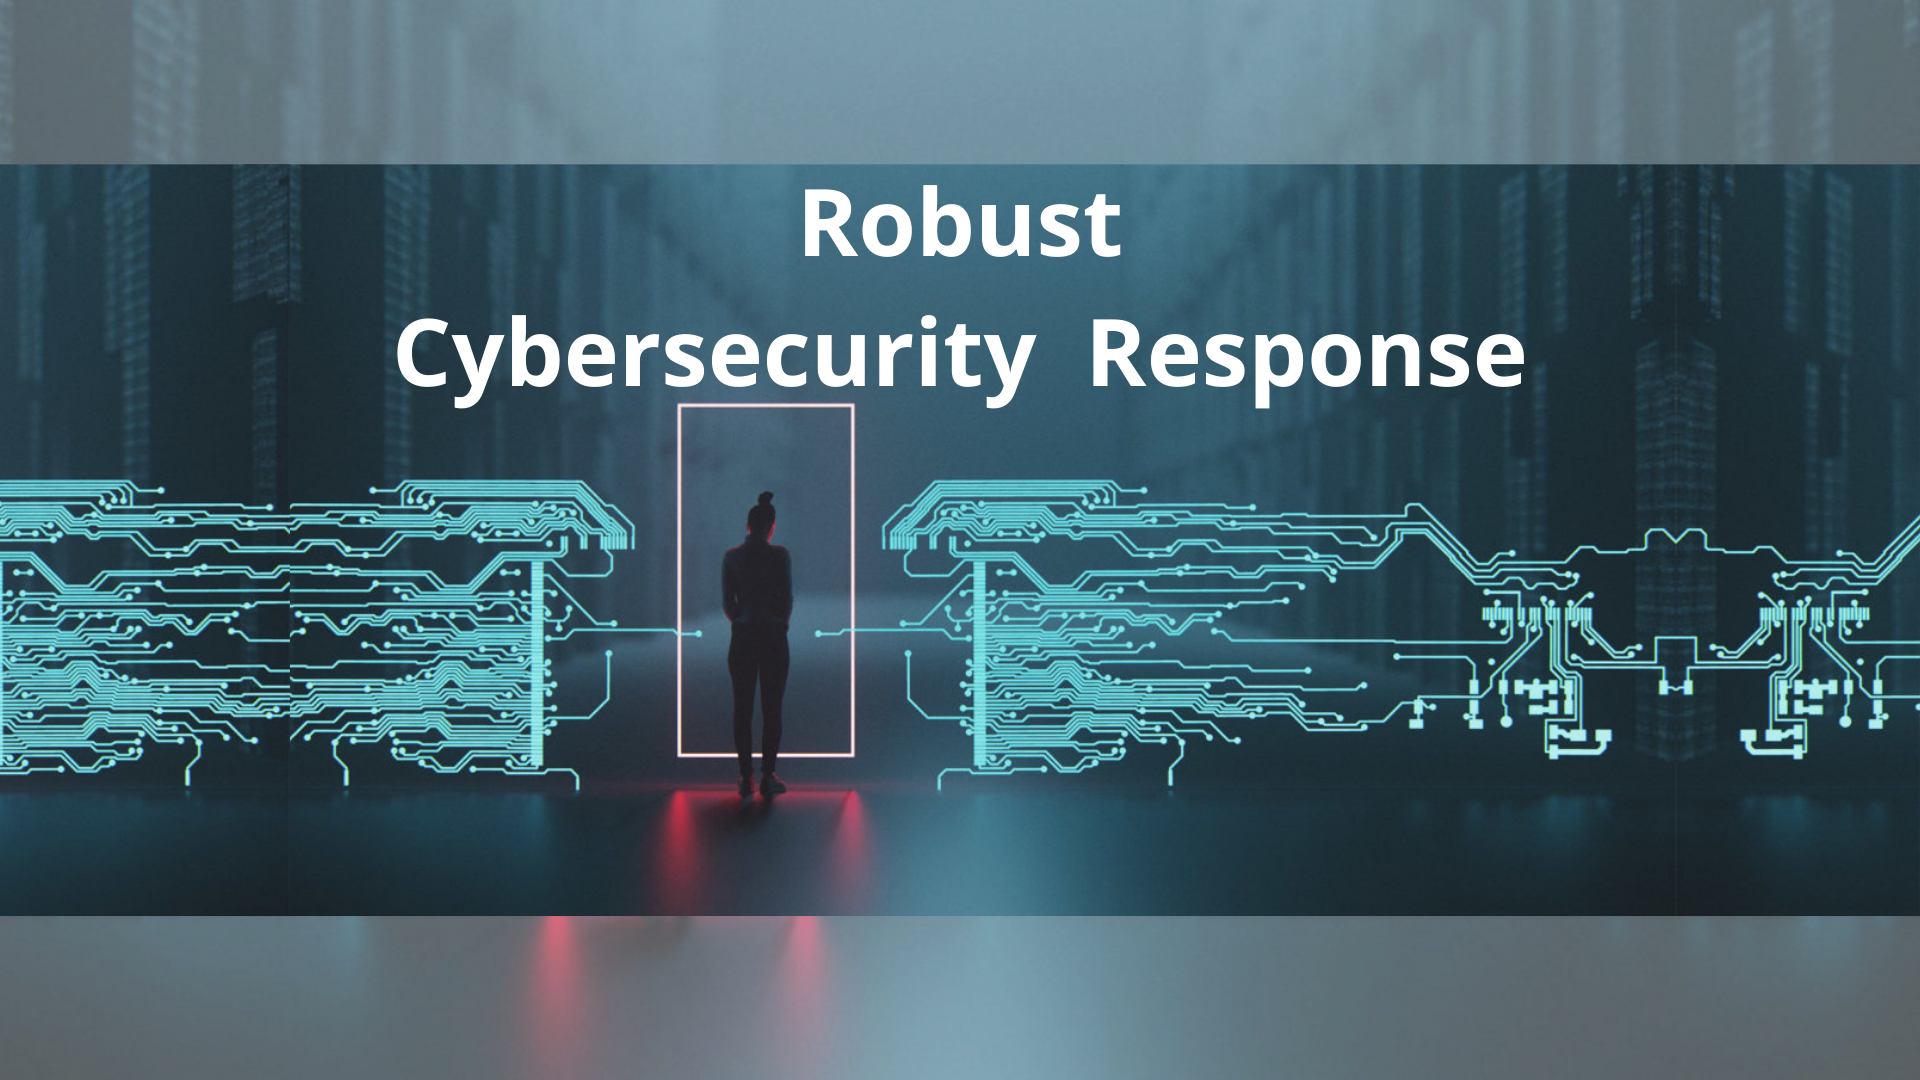 Robust Cybersecurity Response